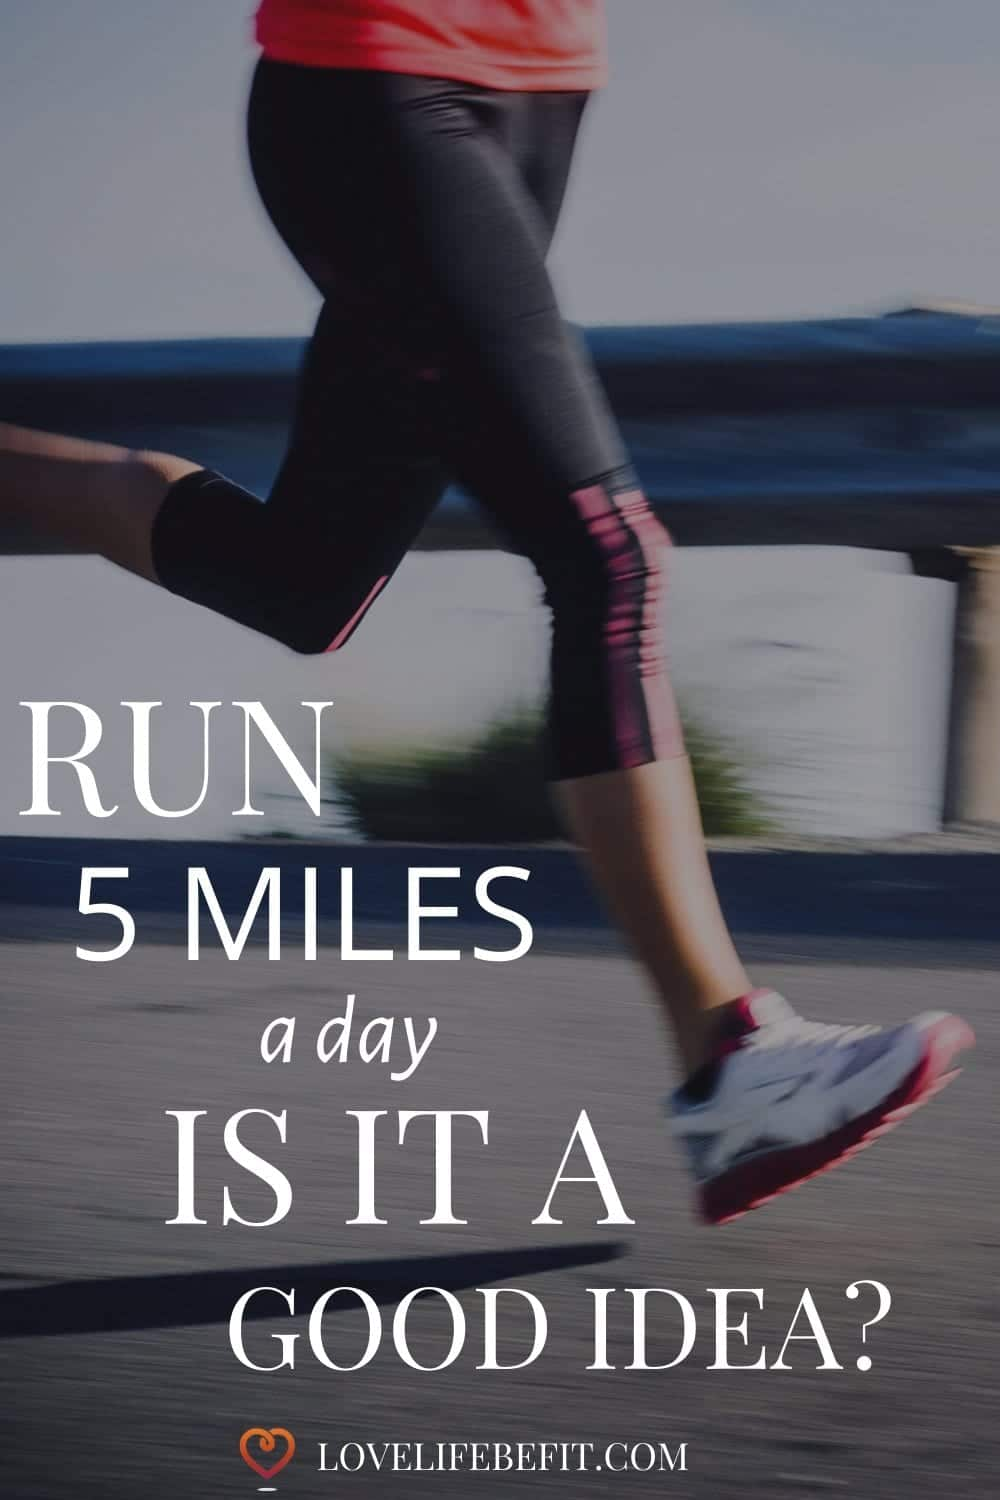 Is it a good idea to run 5 miles a day? Or will it leave you chronically injured doing nothing for your weight loss or fitness? Find out more...#running #runningforbeginners #runningtips